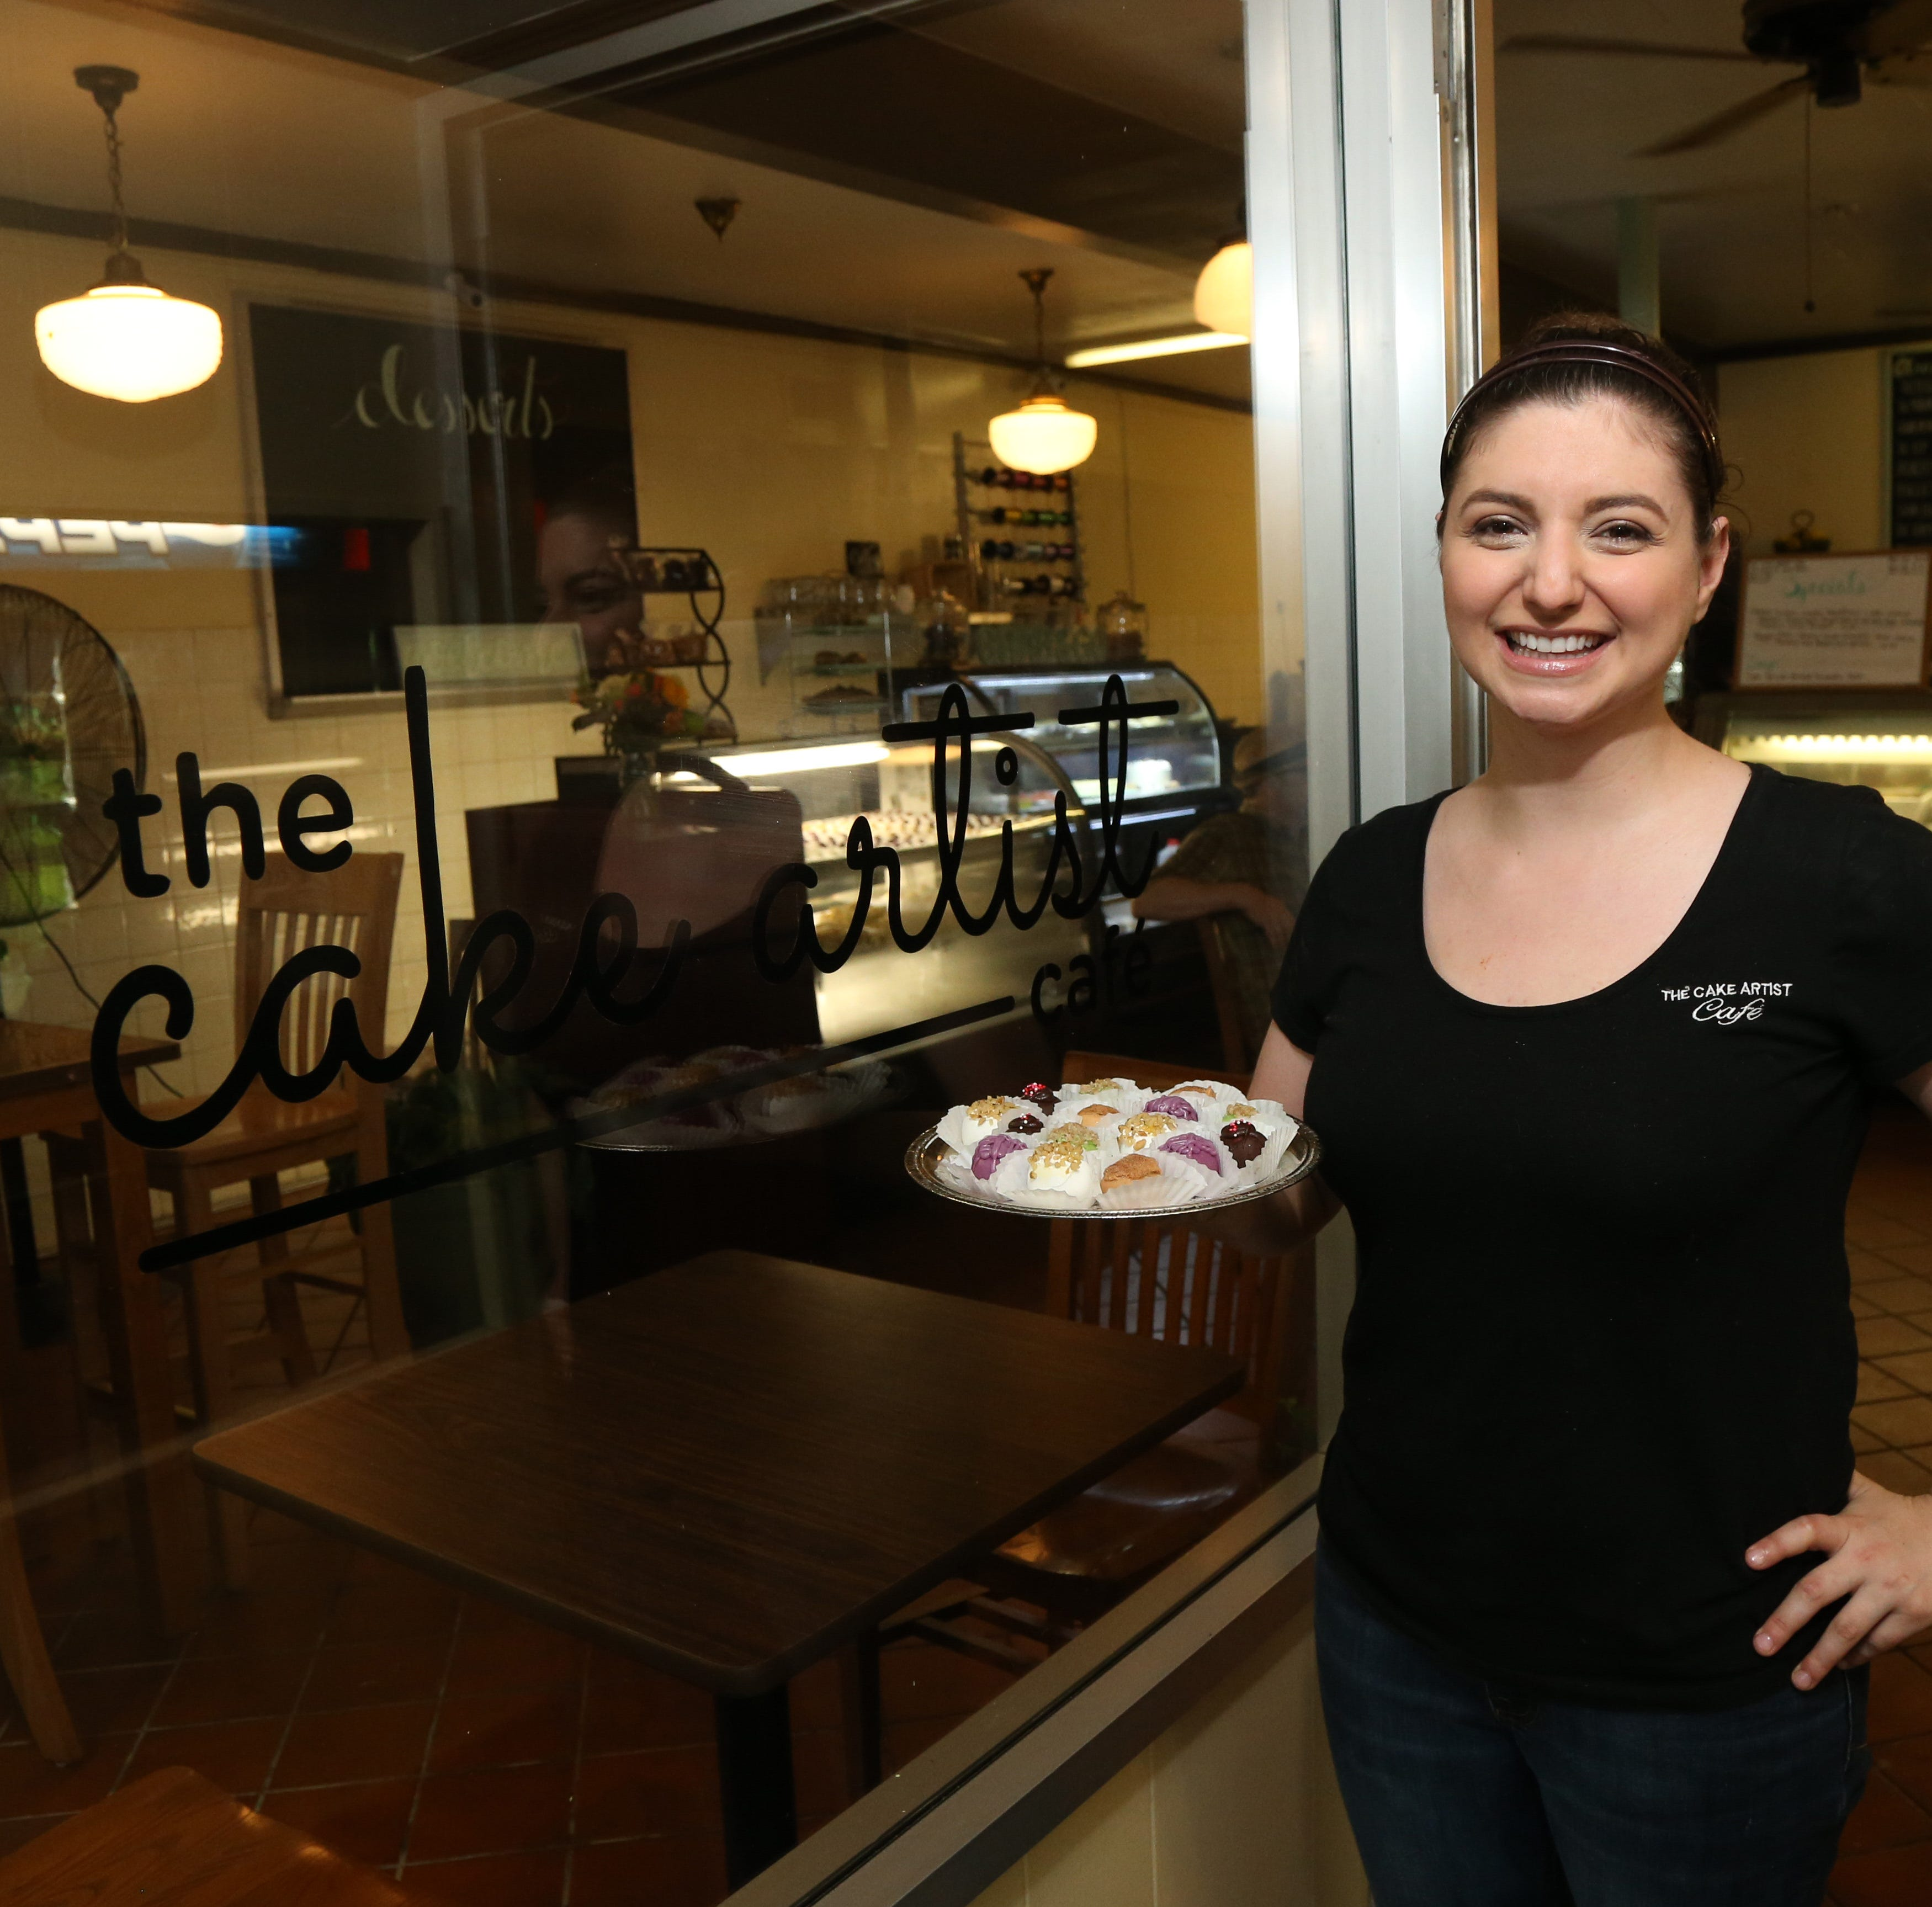 Longtime Highland fave Cake Artist Cafe moves to New Paltz